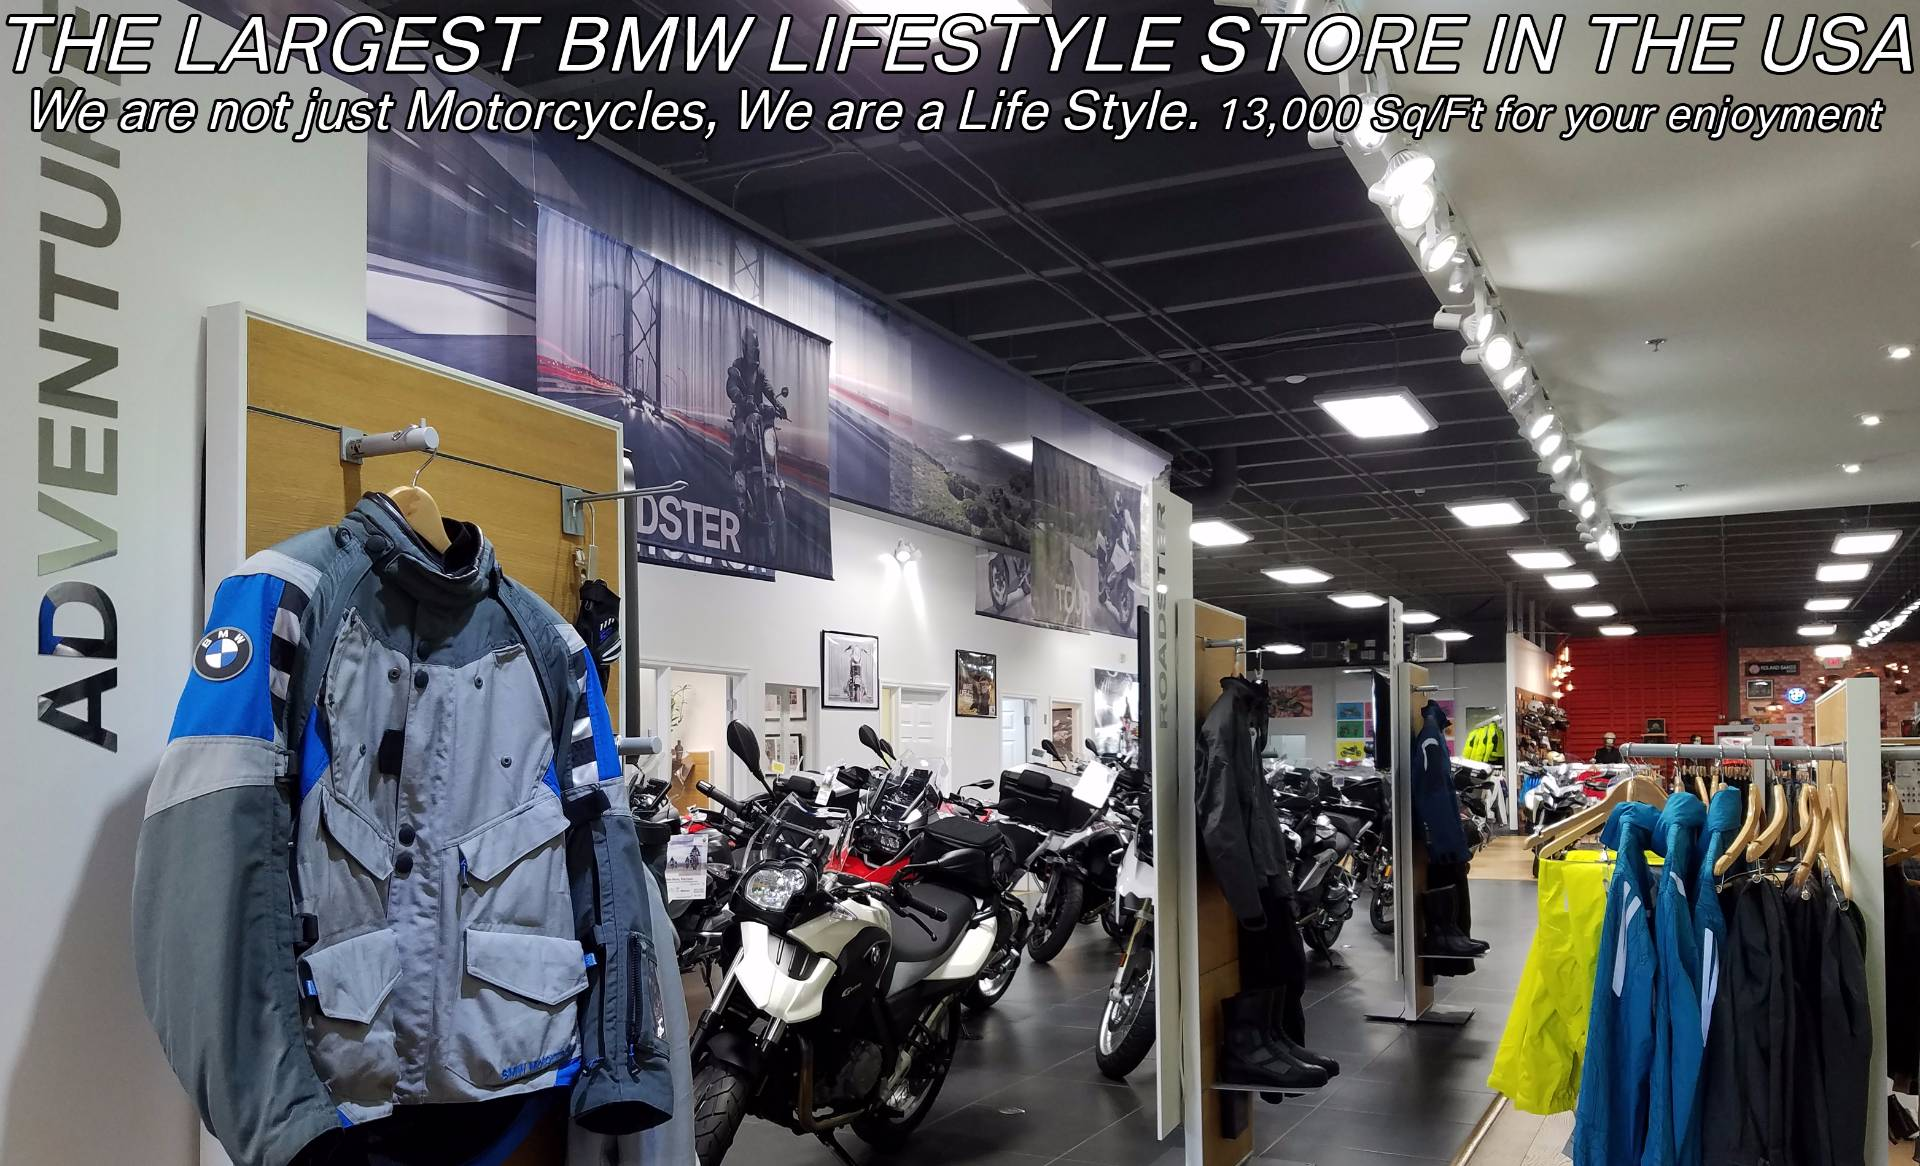 New 2018 BMW C 650S For Sale, BMW C 650 S For Sale, BMW Motorcycle 650 Sport, new BMW Scooter, New Scooter